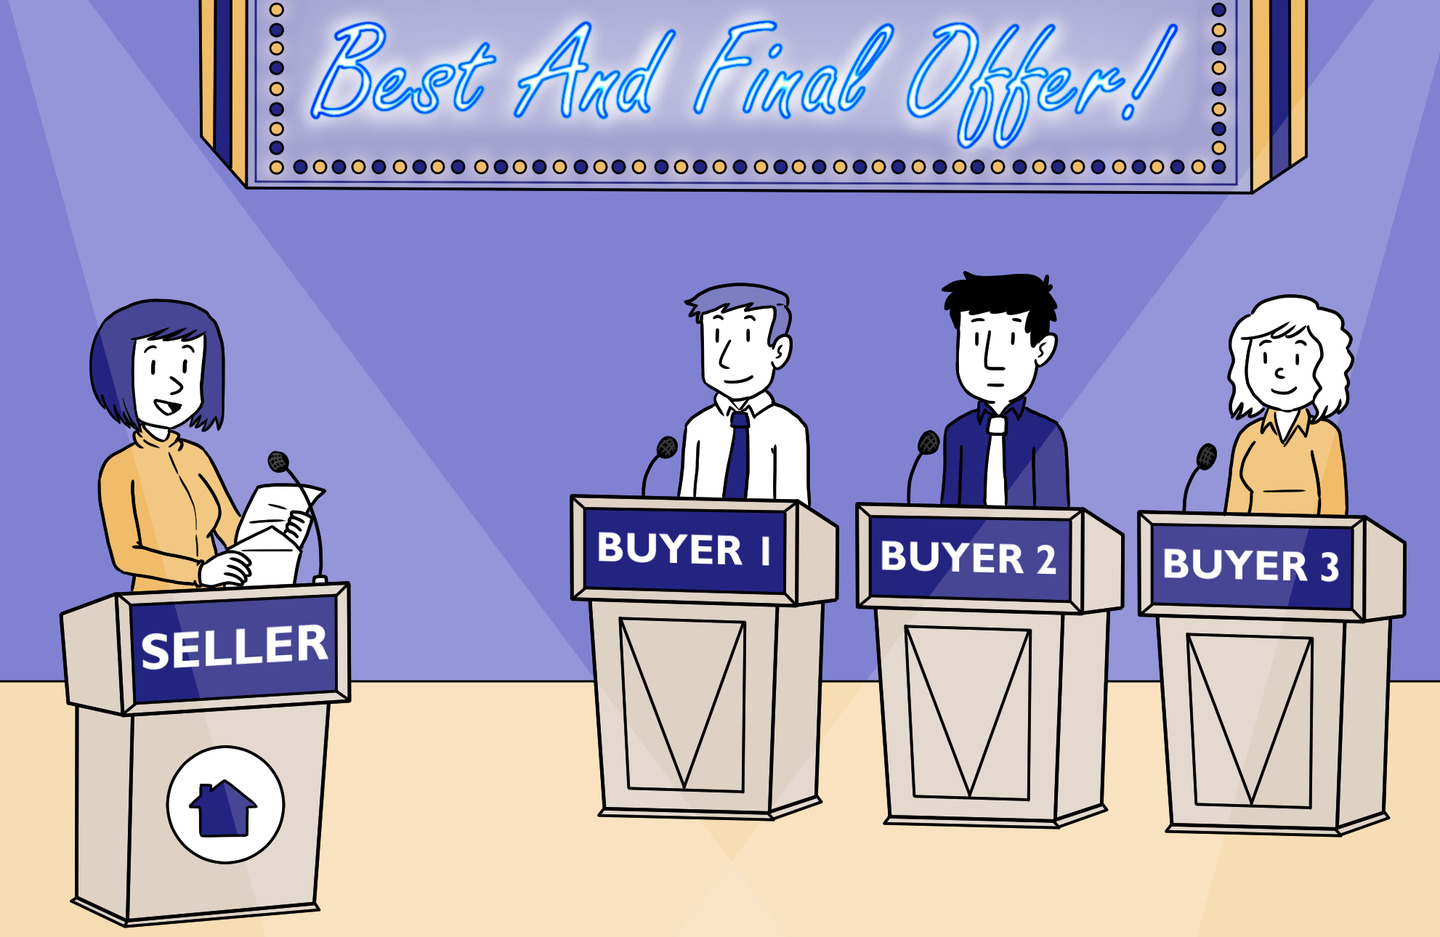 Buyers stand at game show podiums while the host reveals their best and final offers for their NYC apartment purchase